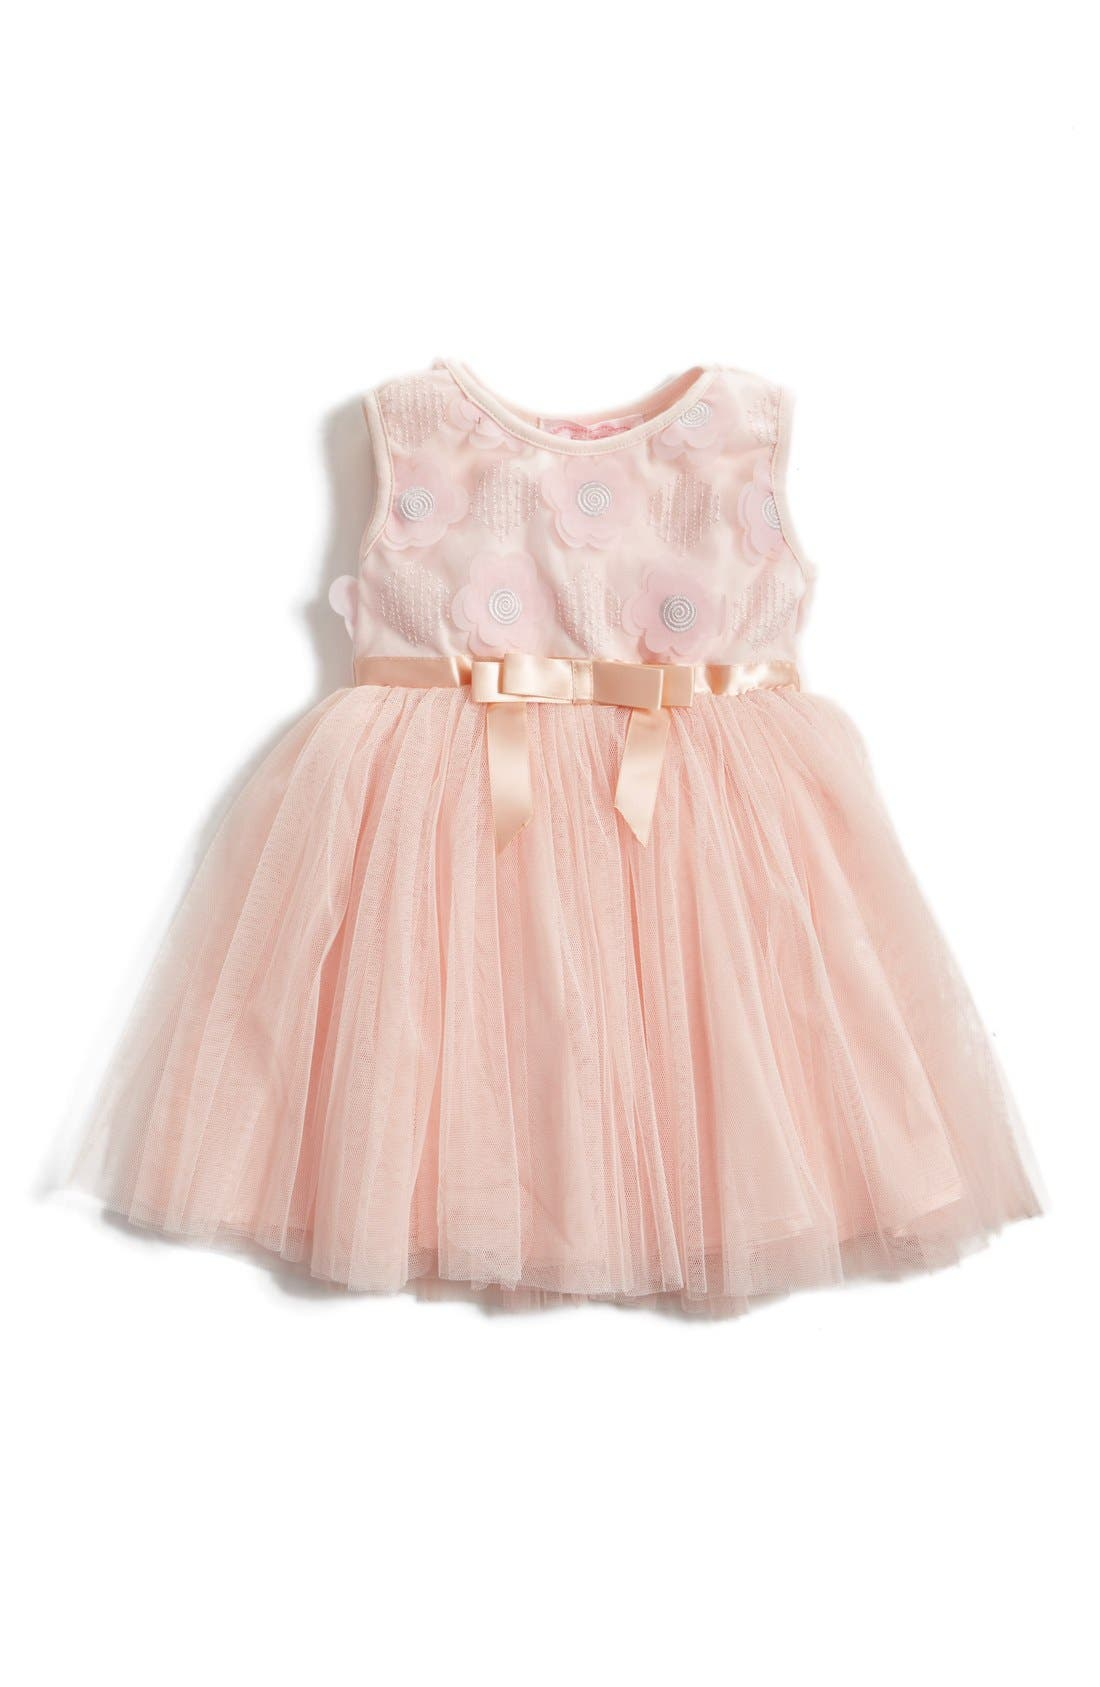 Alternate Image 1 Selected - Popatu Floral Appliqué Tulle Dress (Baby Girls)